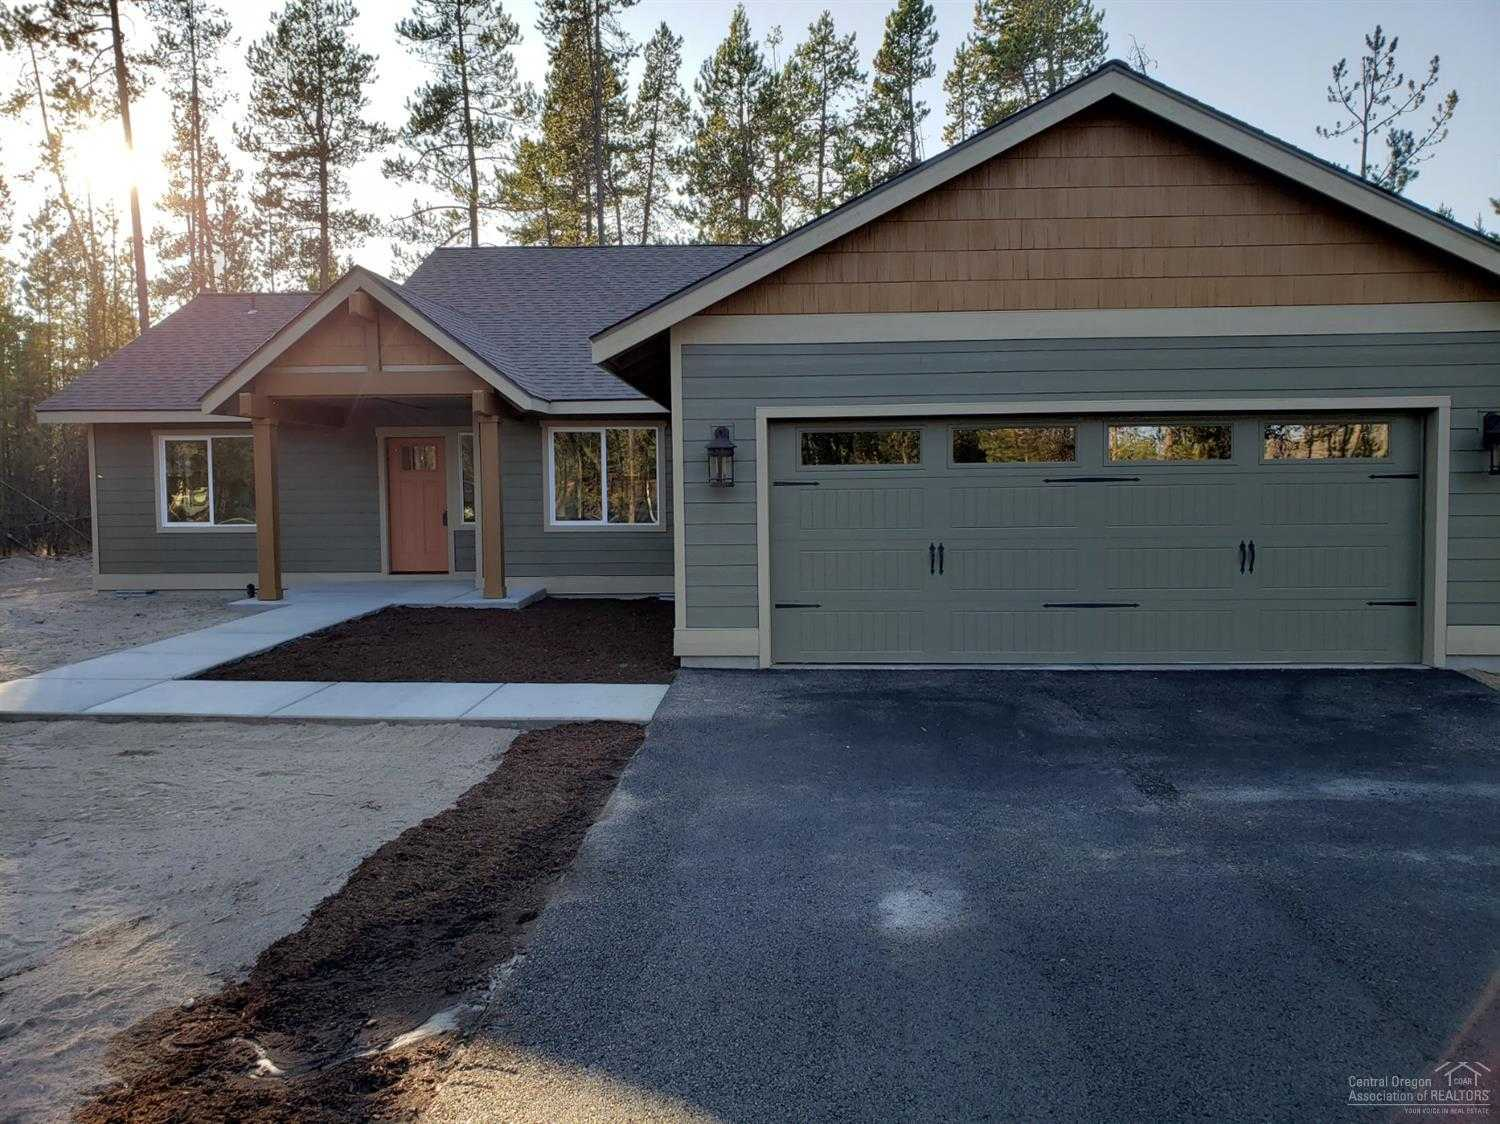 $395,000 - 4Br/2Ba -  for Sale in Oww2, Bend